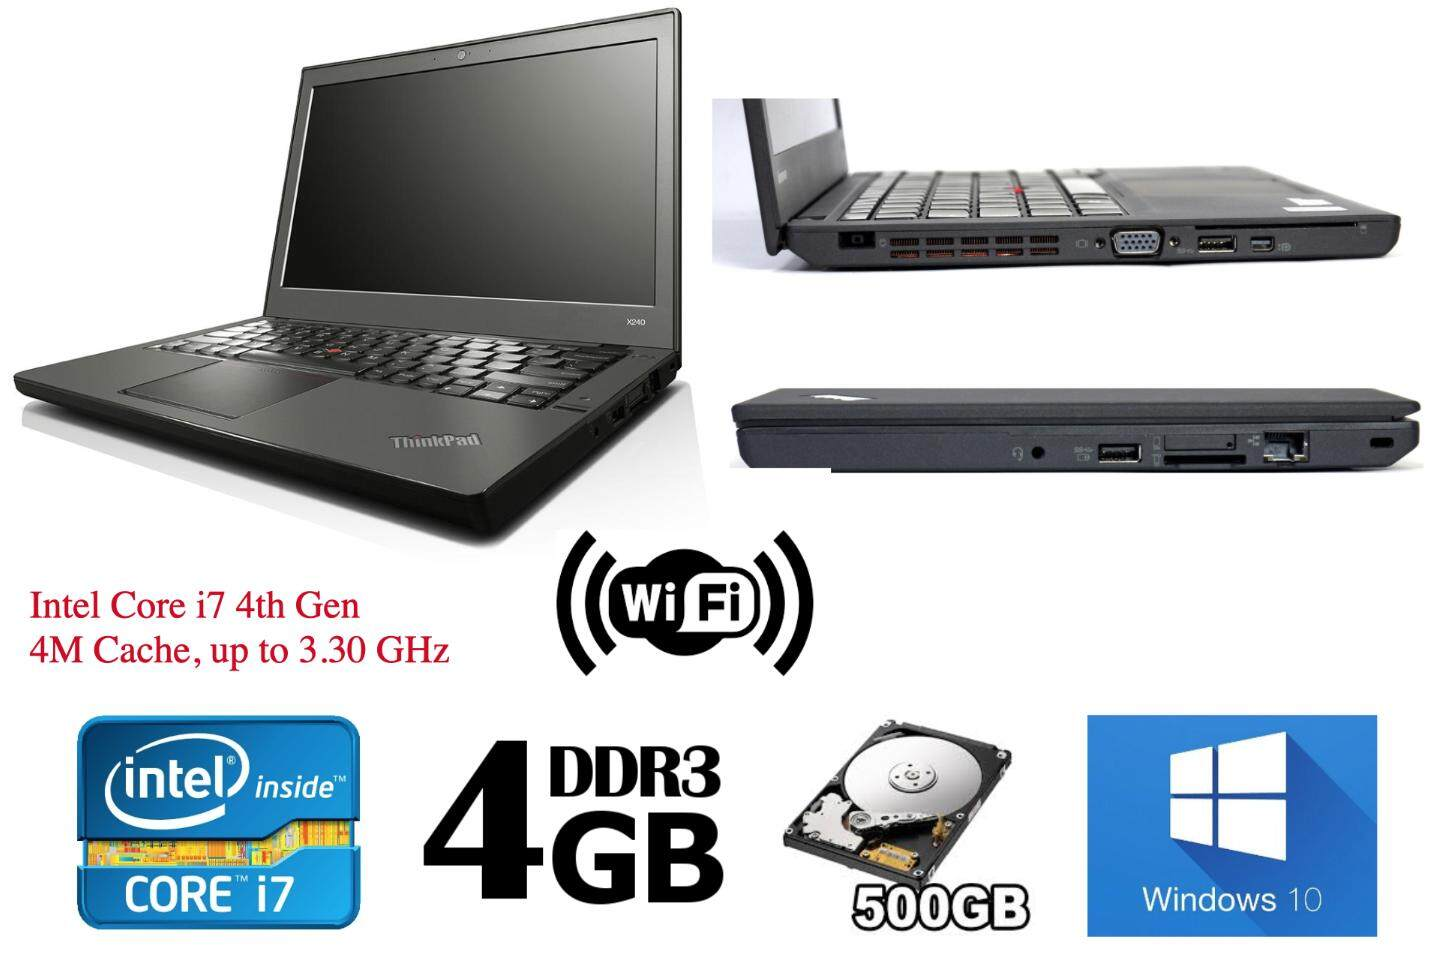 Refurbished Core i7 Lenovo X240 Ultrabook (i7 4th Gen 2.1Ghz up to 3.30Ghz / 4GB RAM / 500GB HDD / Win7 COA / Win 10 Pro / Bag) (3 Month Warranty for Laptop & 1 Month Warranty for Battery and Adaptor) Used Laptop Notebook Malaysia